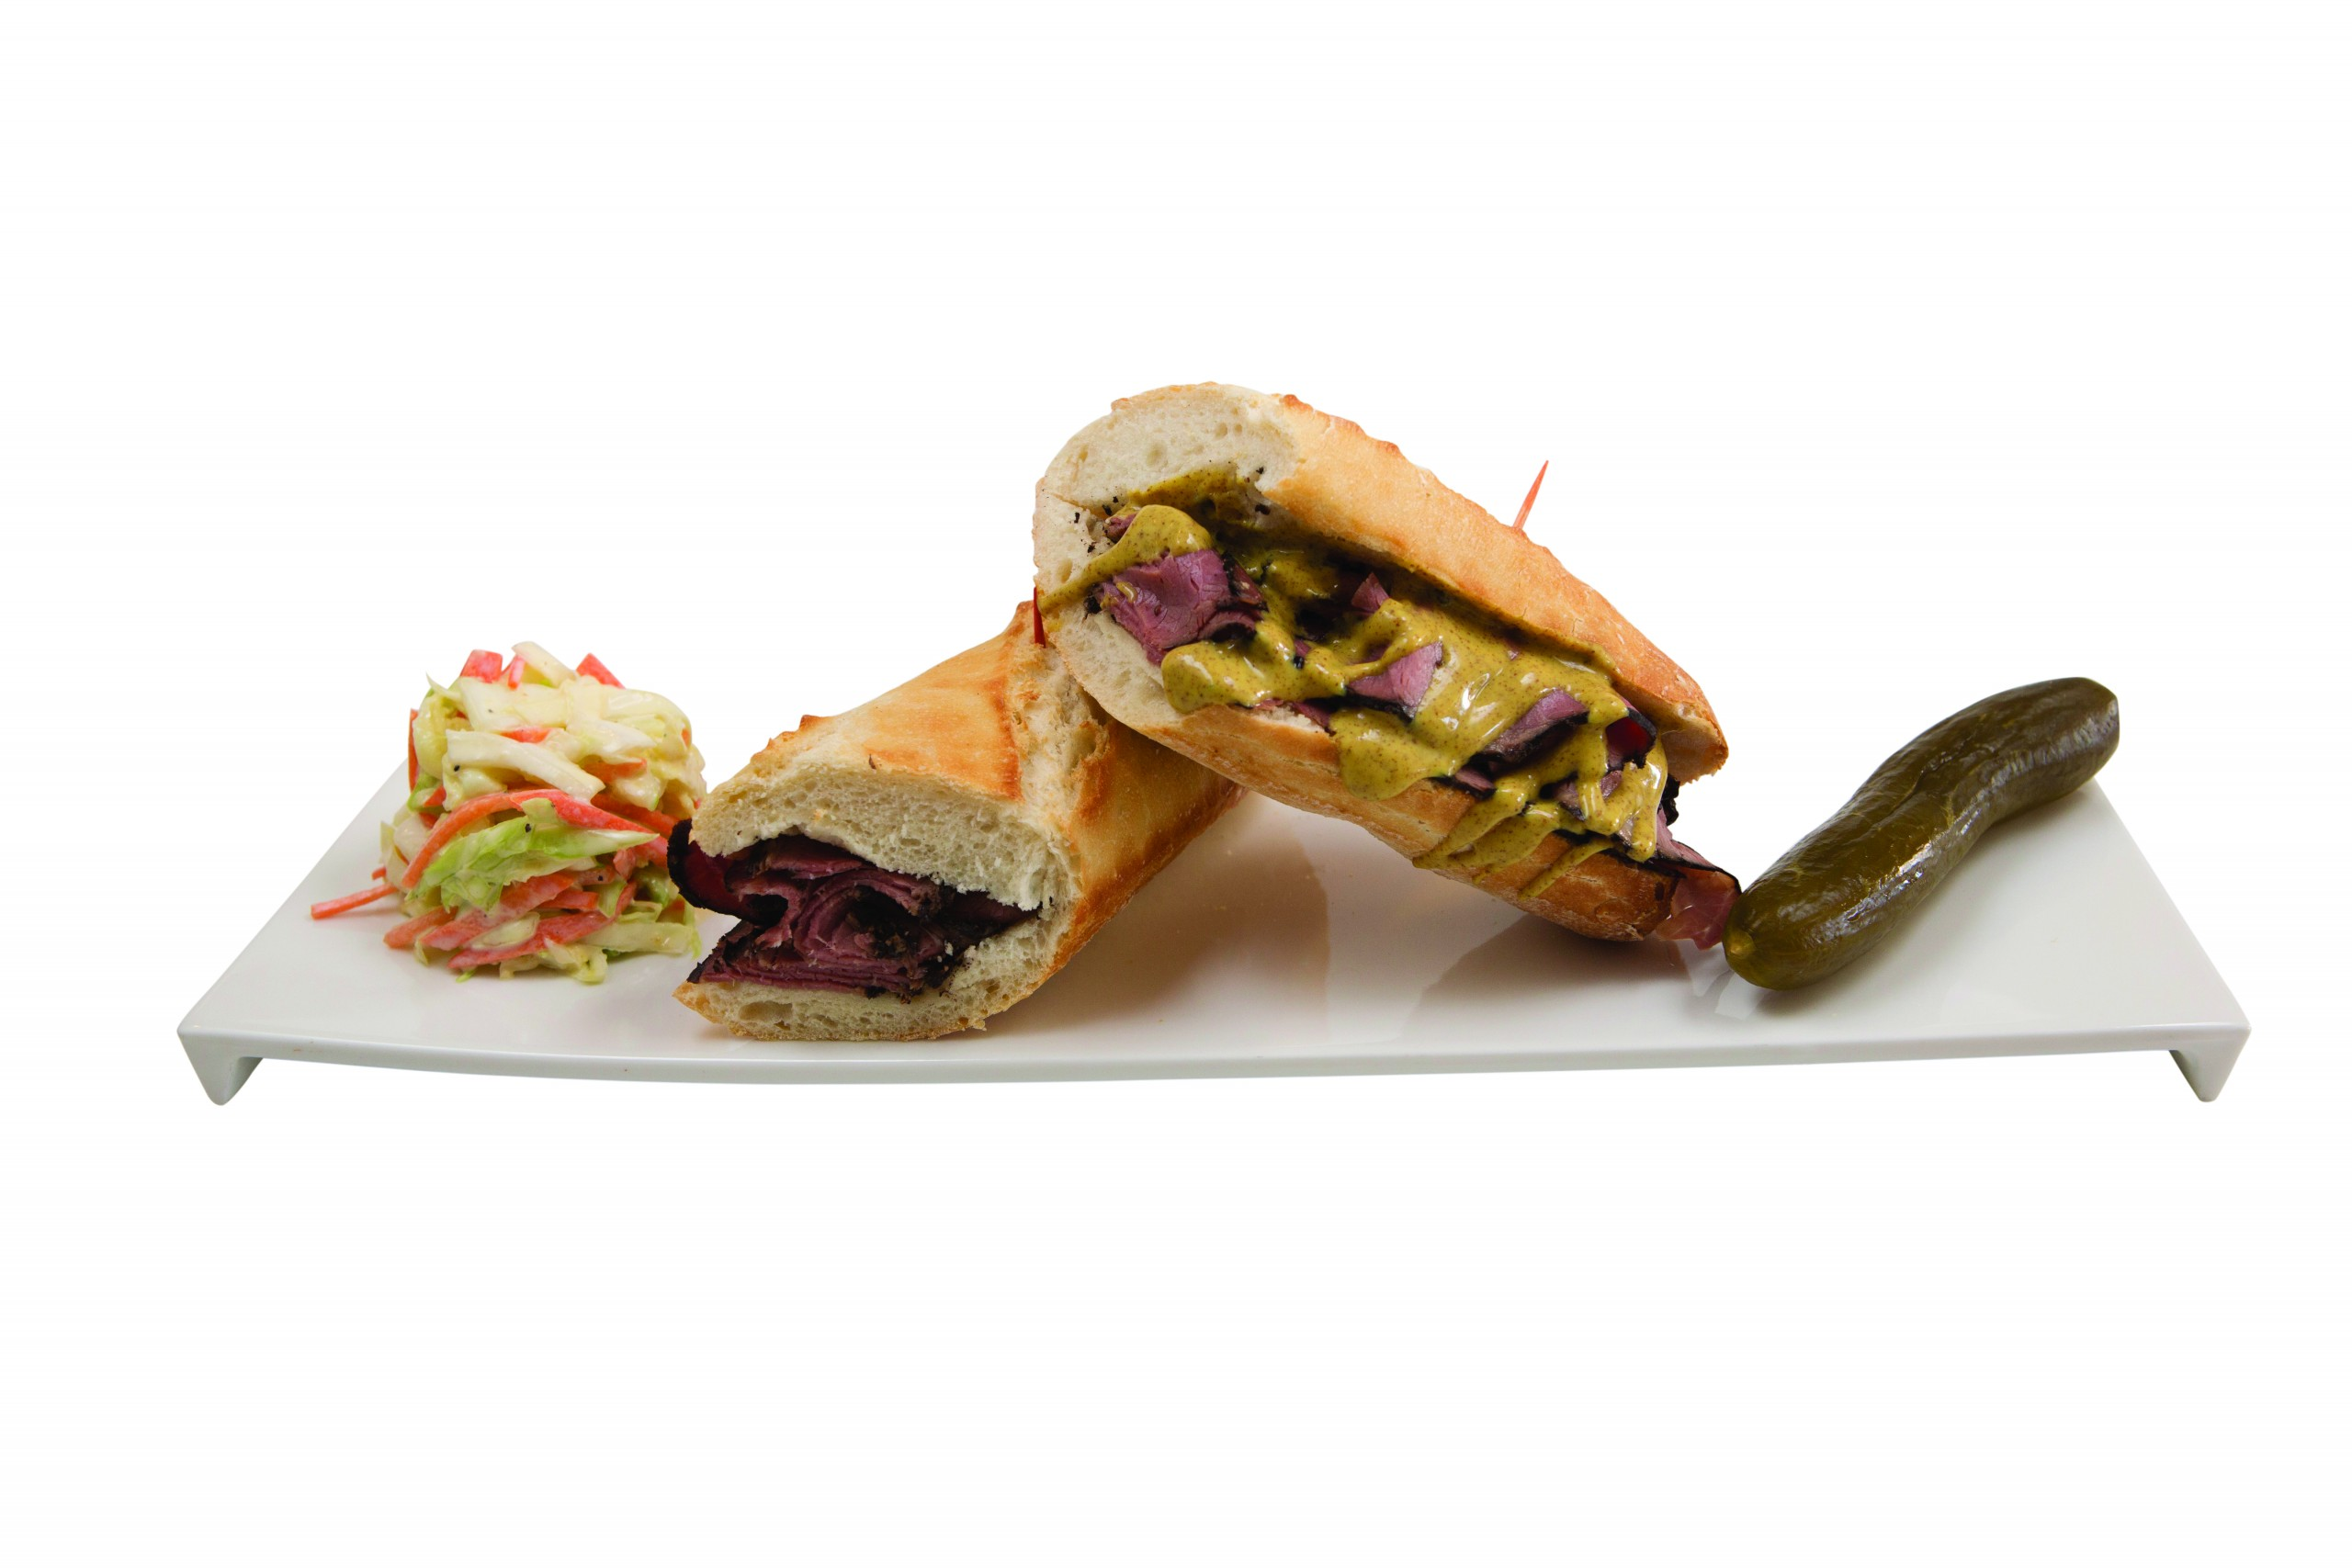 Pastrami sandwhich on a french baguette with spicy dijon mustard, house coleslaw and a kosher dill pickle. Photo: David Croxford